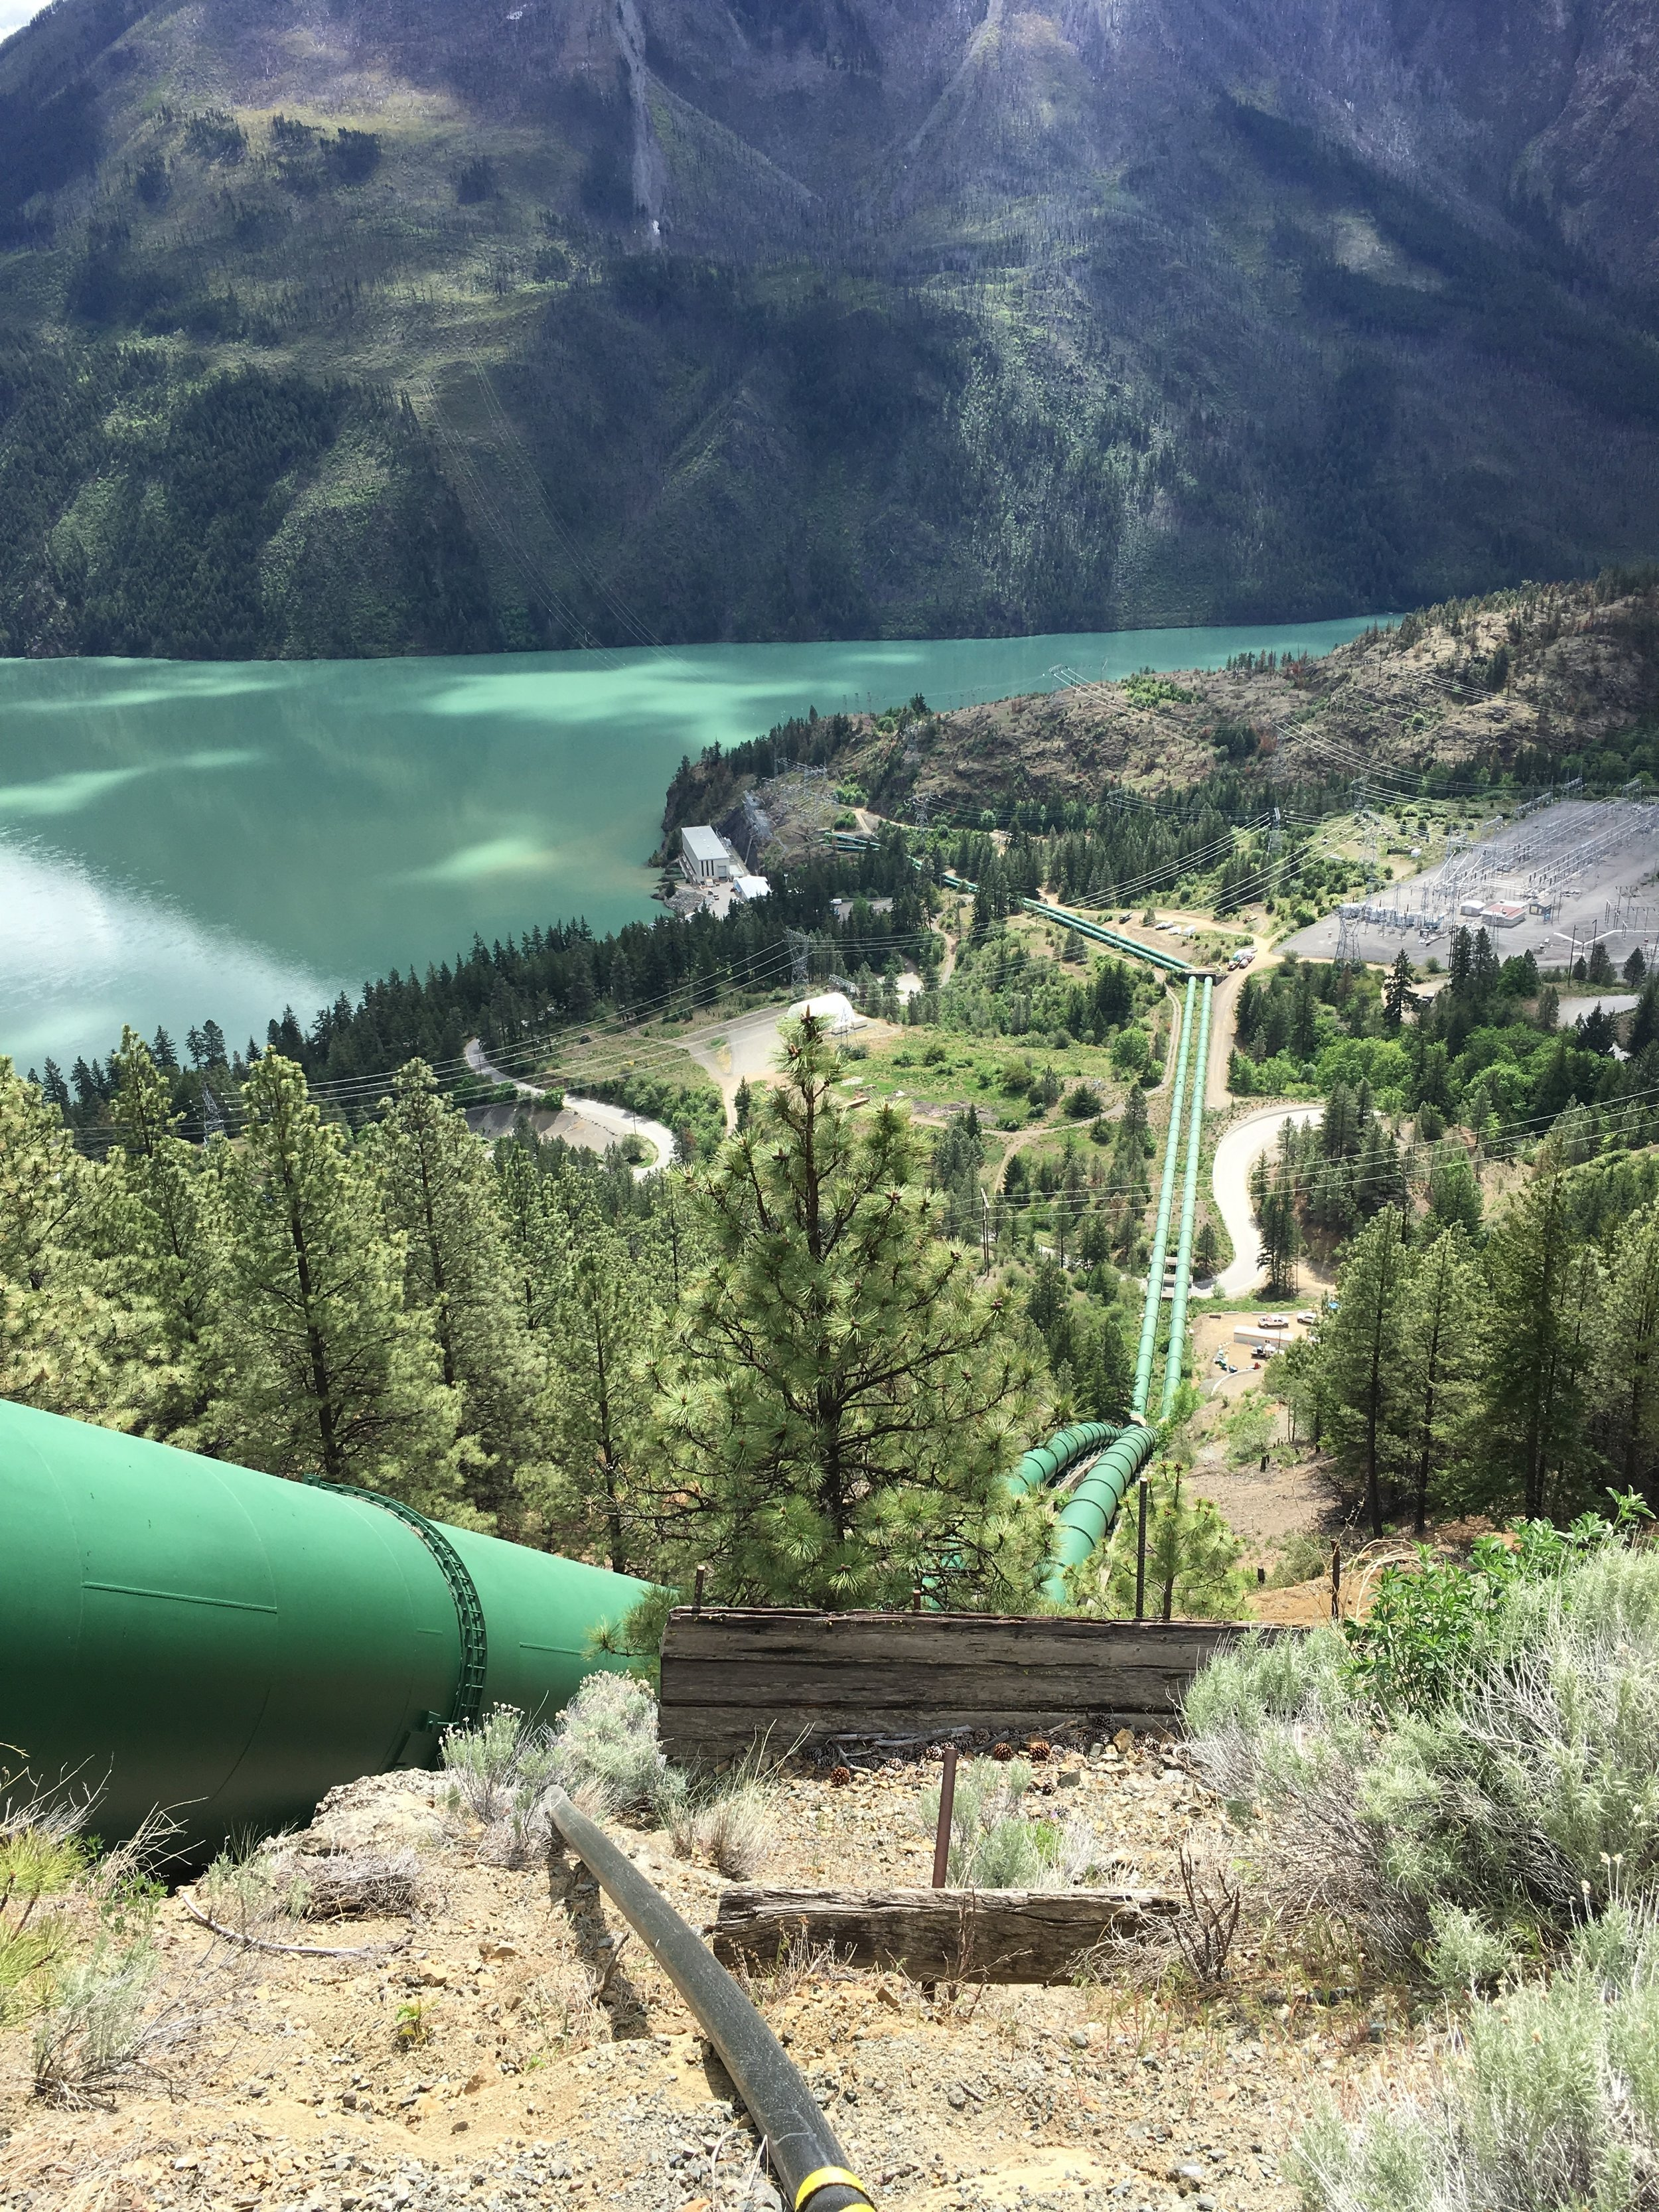 Looking Downstream from PIV @ Penstock Project in Interior of British Columbia, Canada (2018)